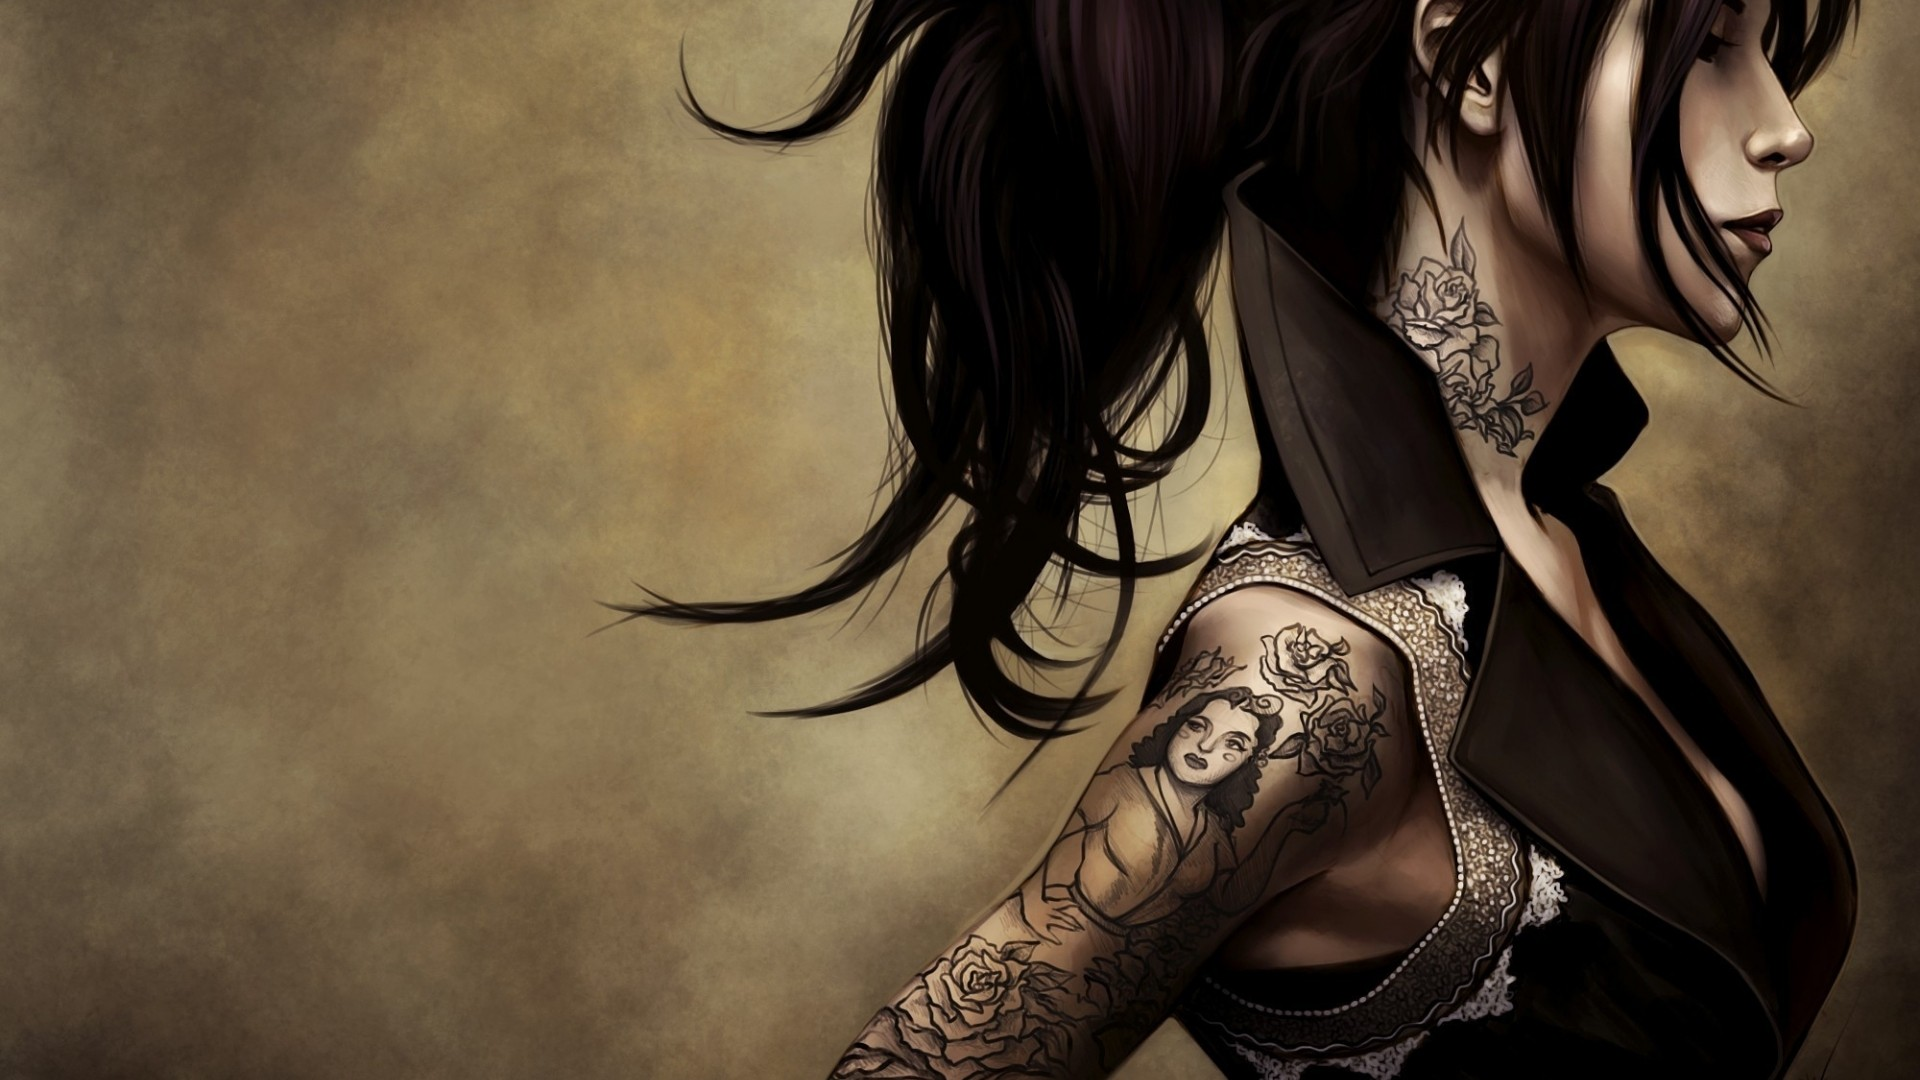 Tattoos wallpapers best wallpapers for Girl tattoo artist